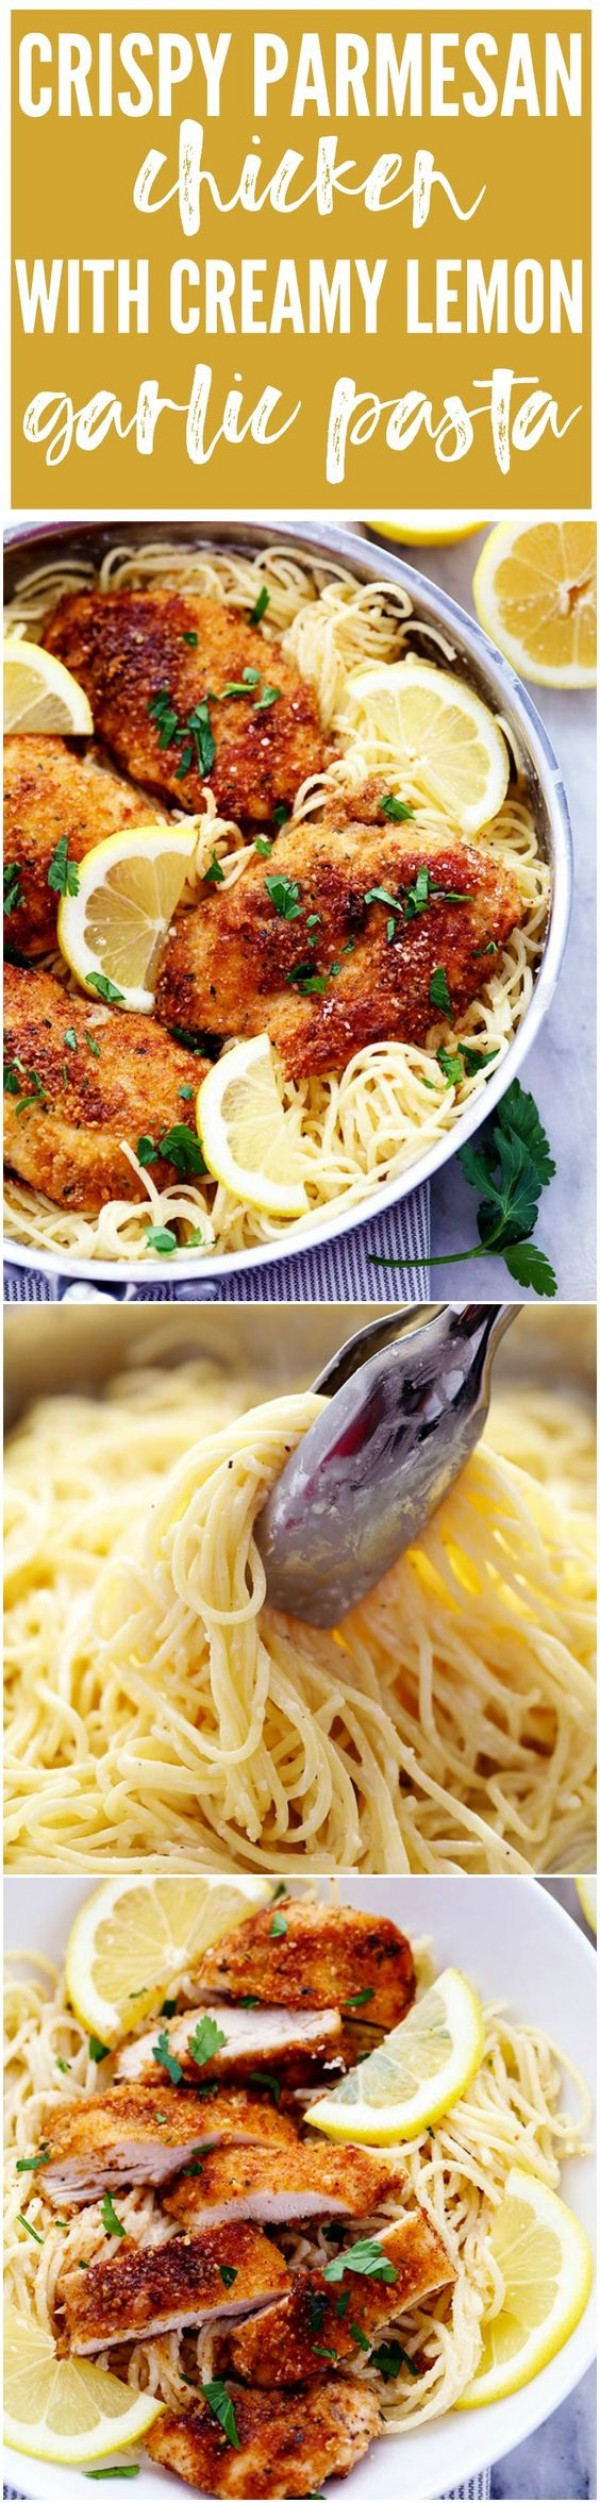 20 Unforgettable Chicken Recipes for a Romantic Dinner for Two - Get the recipe Crispy Parmesan Chicken with Creamy Lemon Garlic Pasta @recipes_to_go